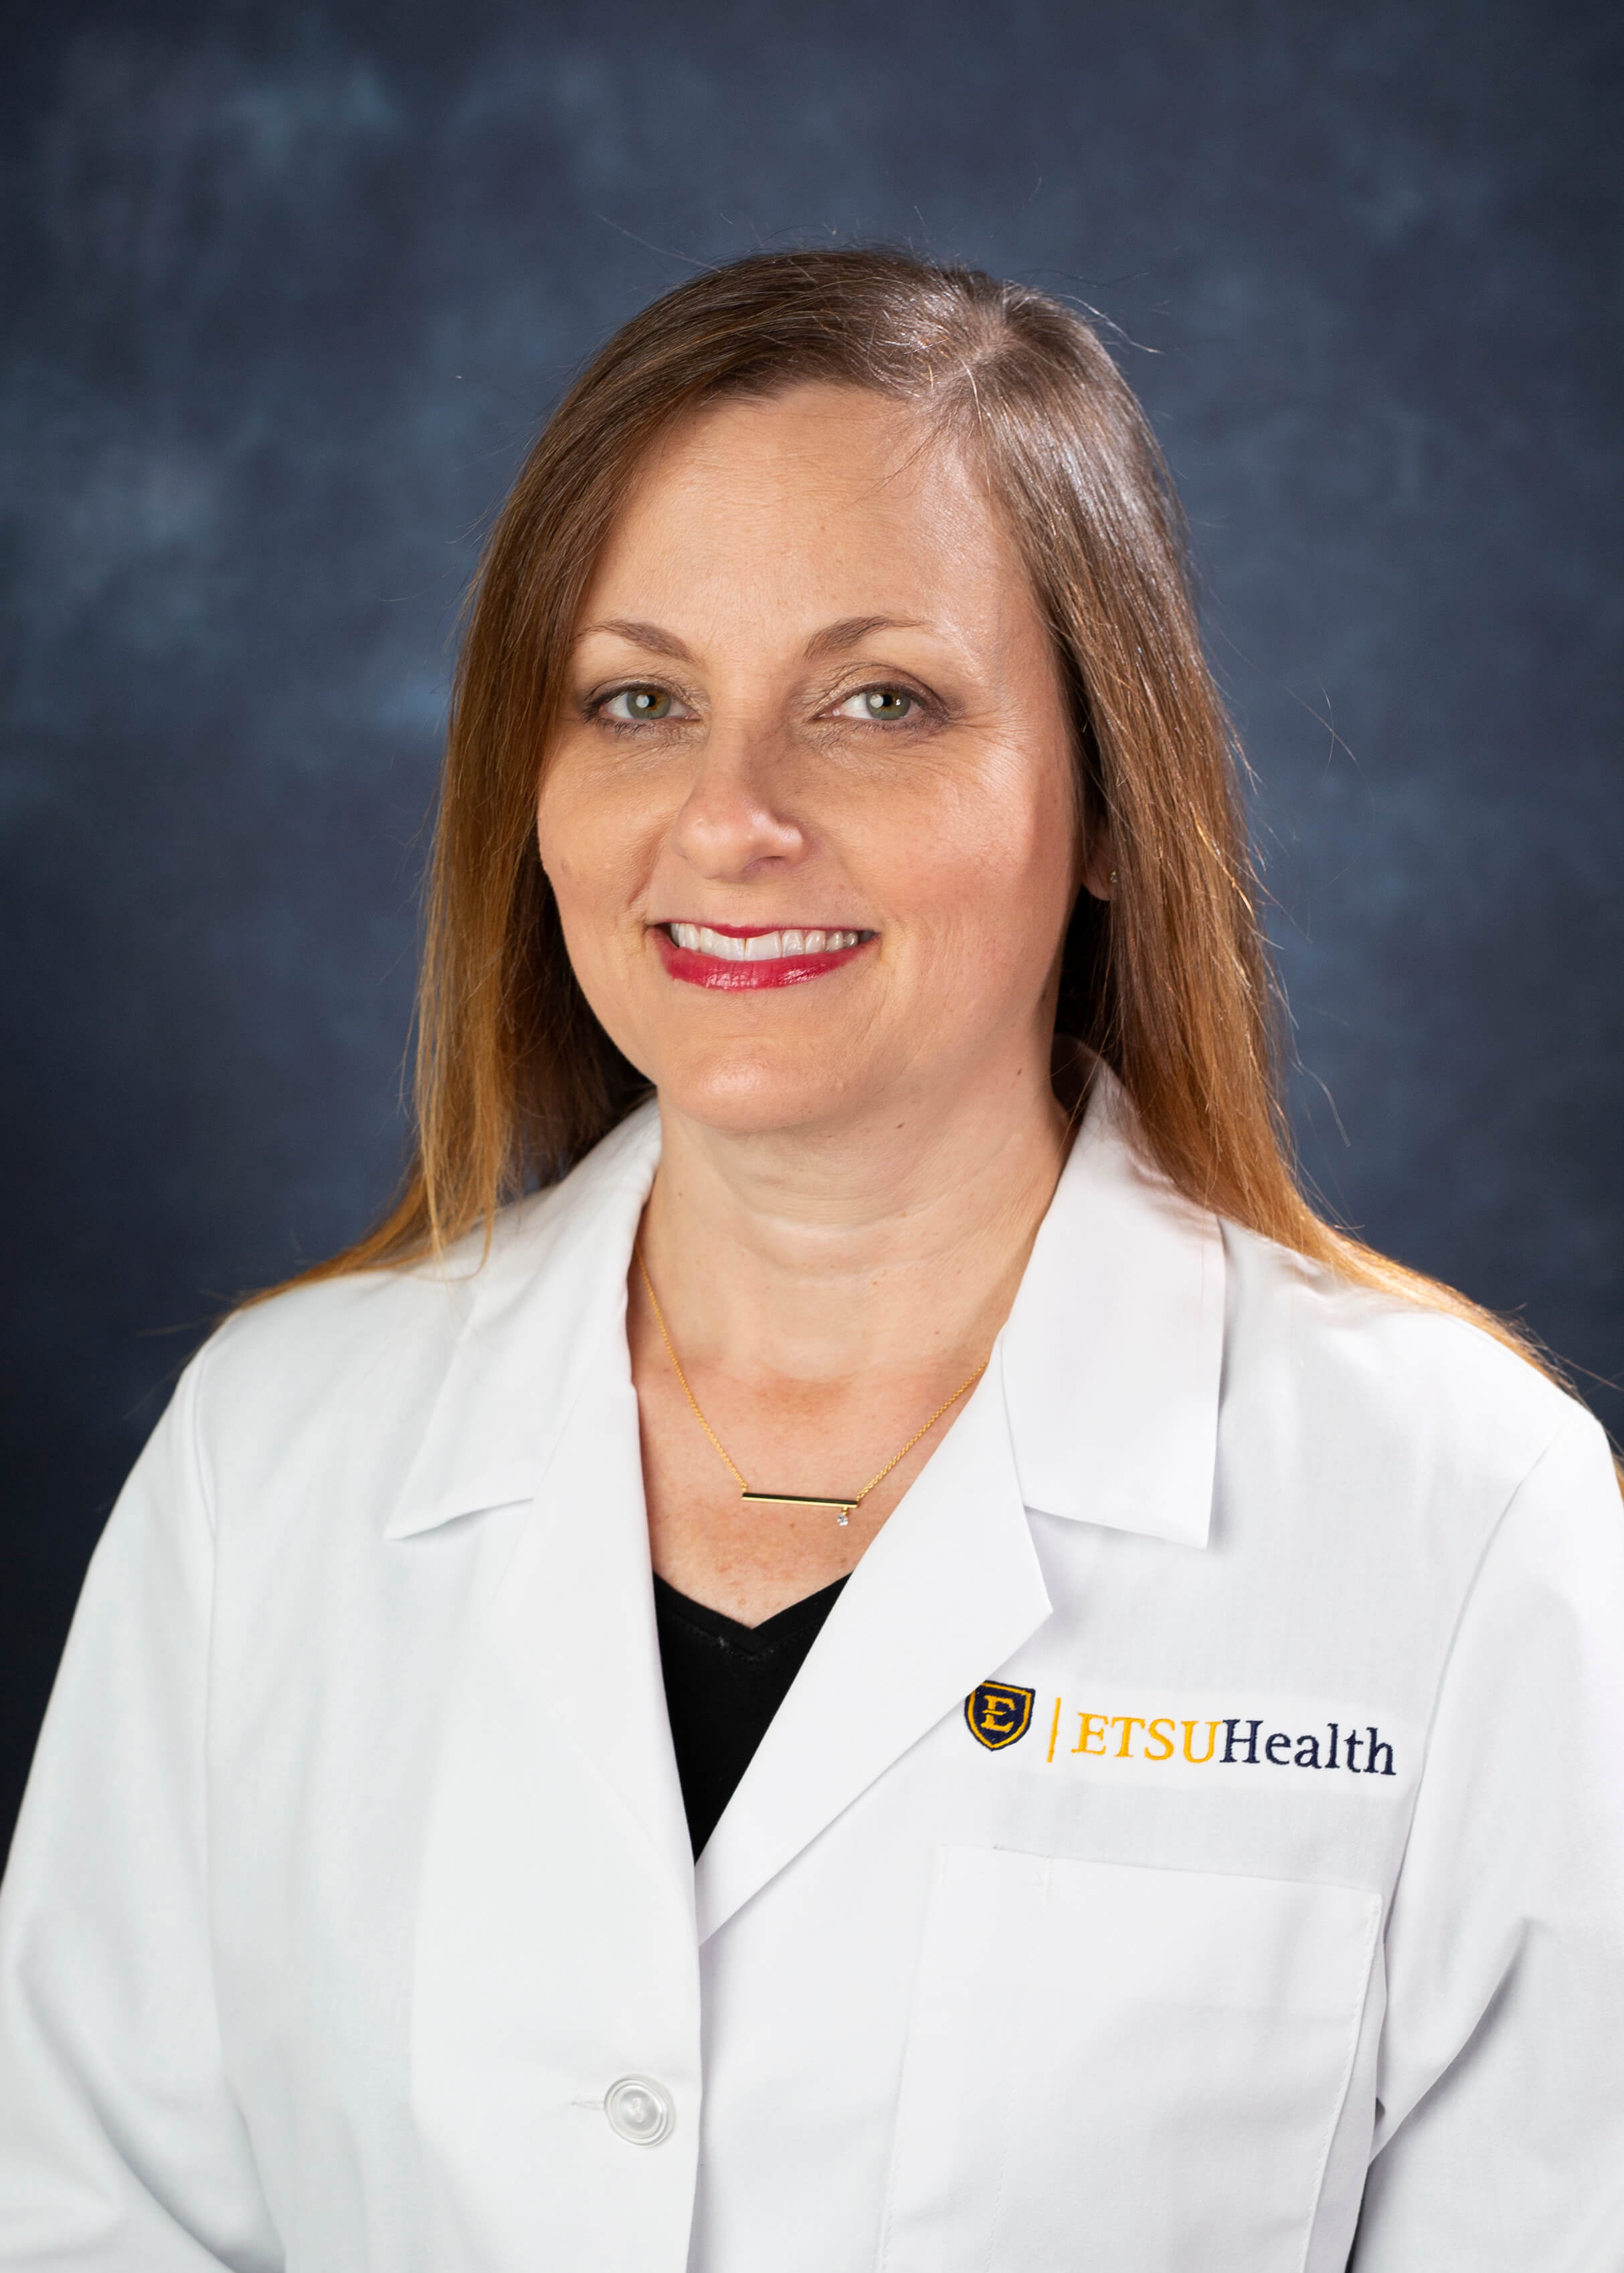 Photo of Karen Schetzina, M.D.